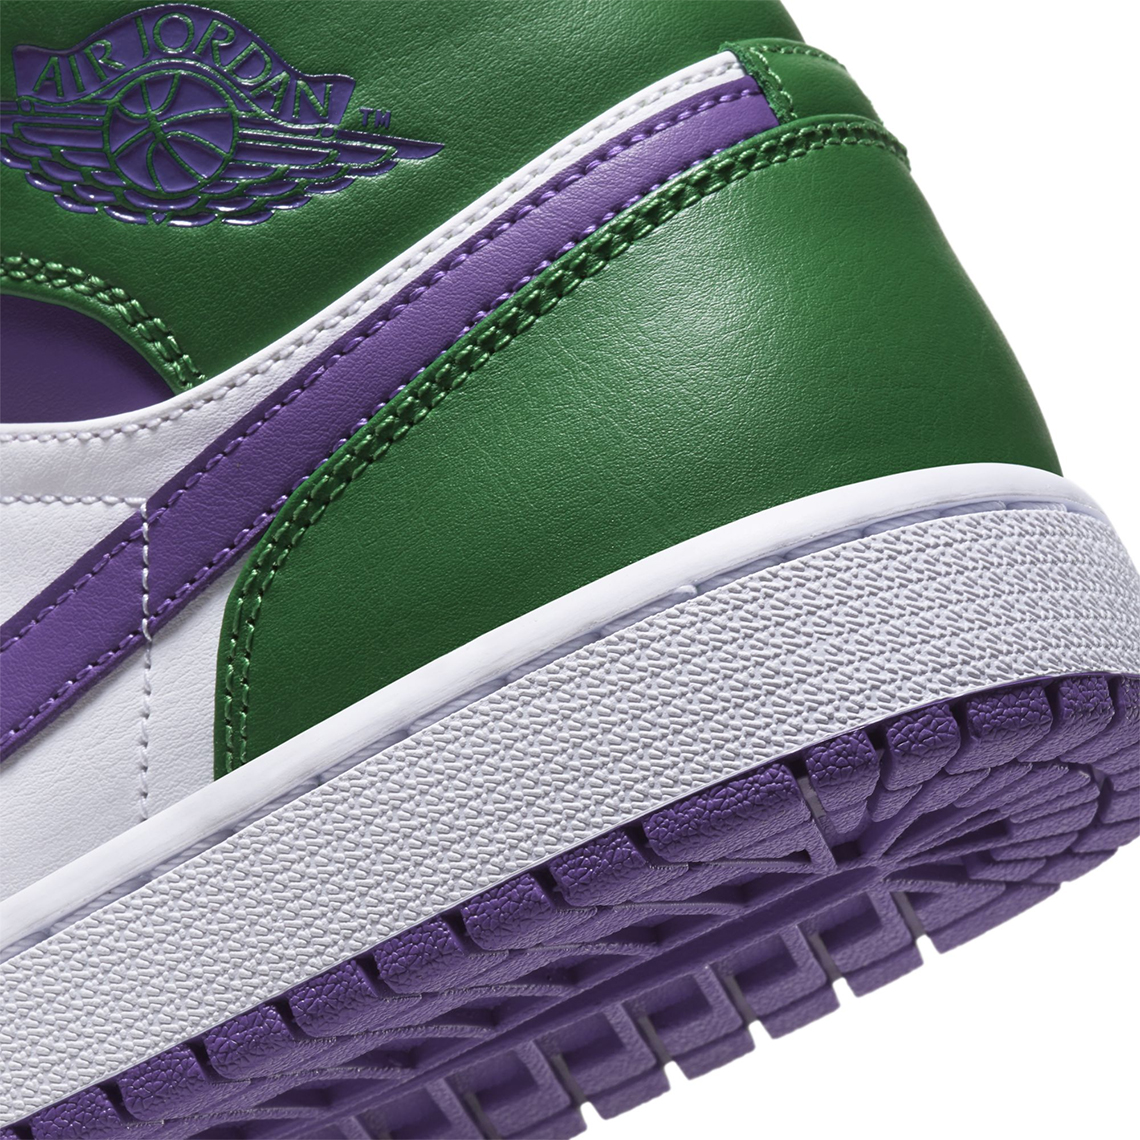 Air Jordan 1 Mid Hulk Green Purple 554724-300 | SneakerNews.com